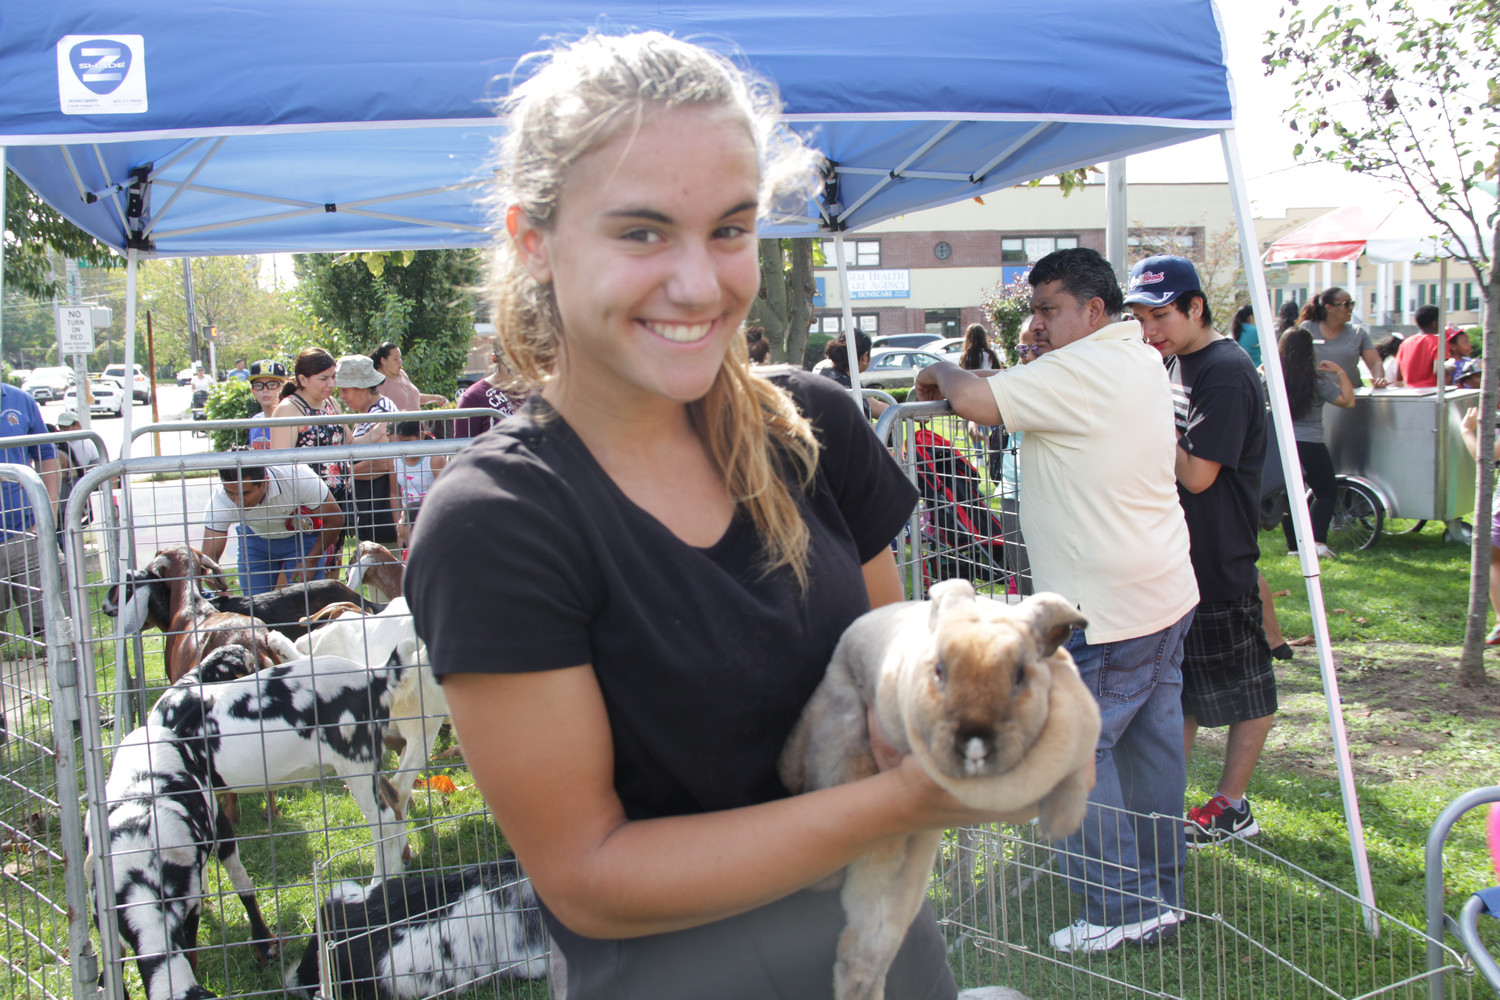 Library volunteer Kailyn Reynolds, 16, looked after the bunnies and chickens during the festival's petting zoo.